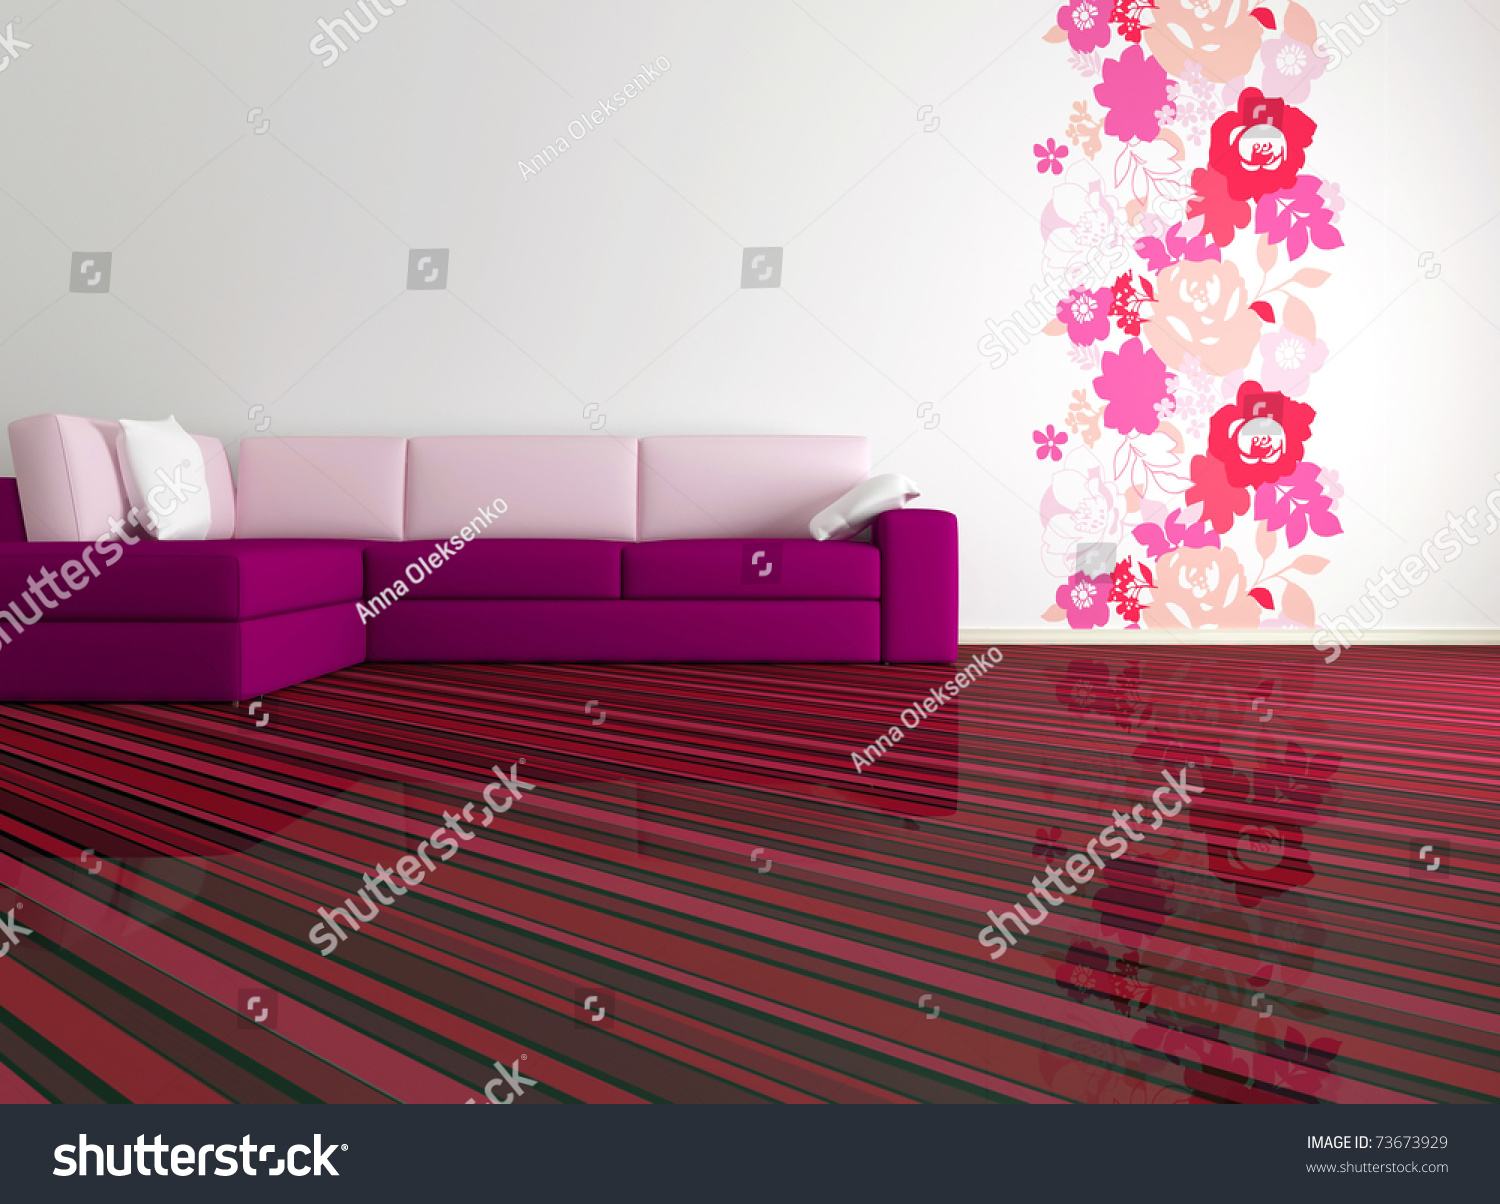 Bright Interior Design Of Modern Living Room With Big Pink Sofa And Floral  Wallpaper, 3d